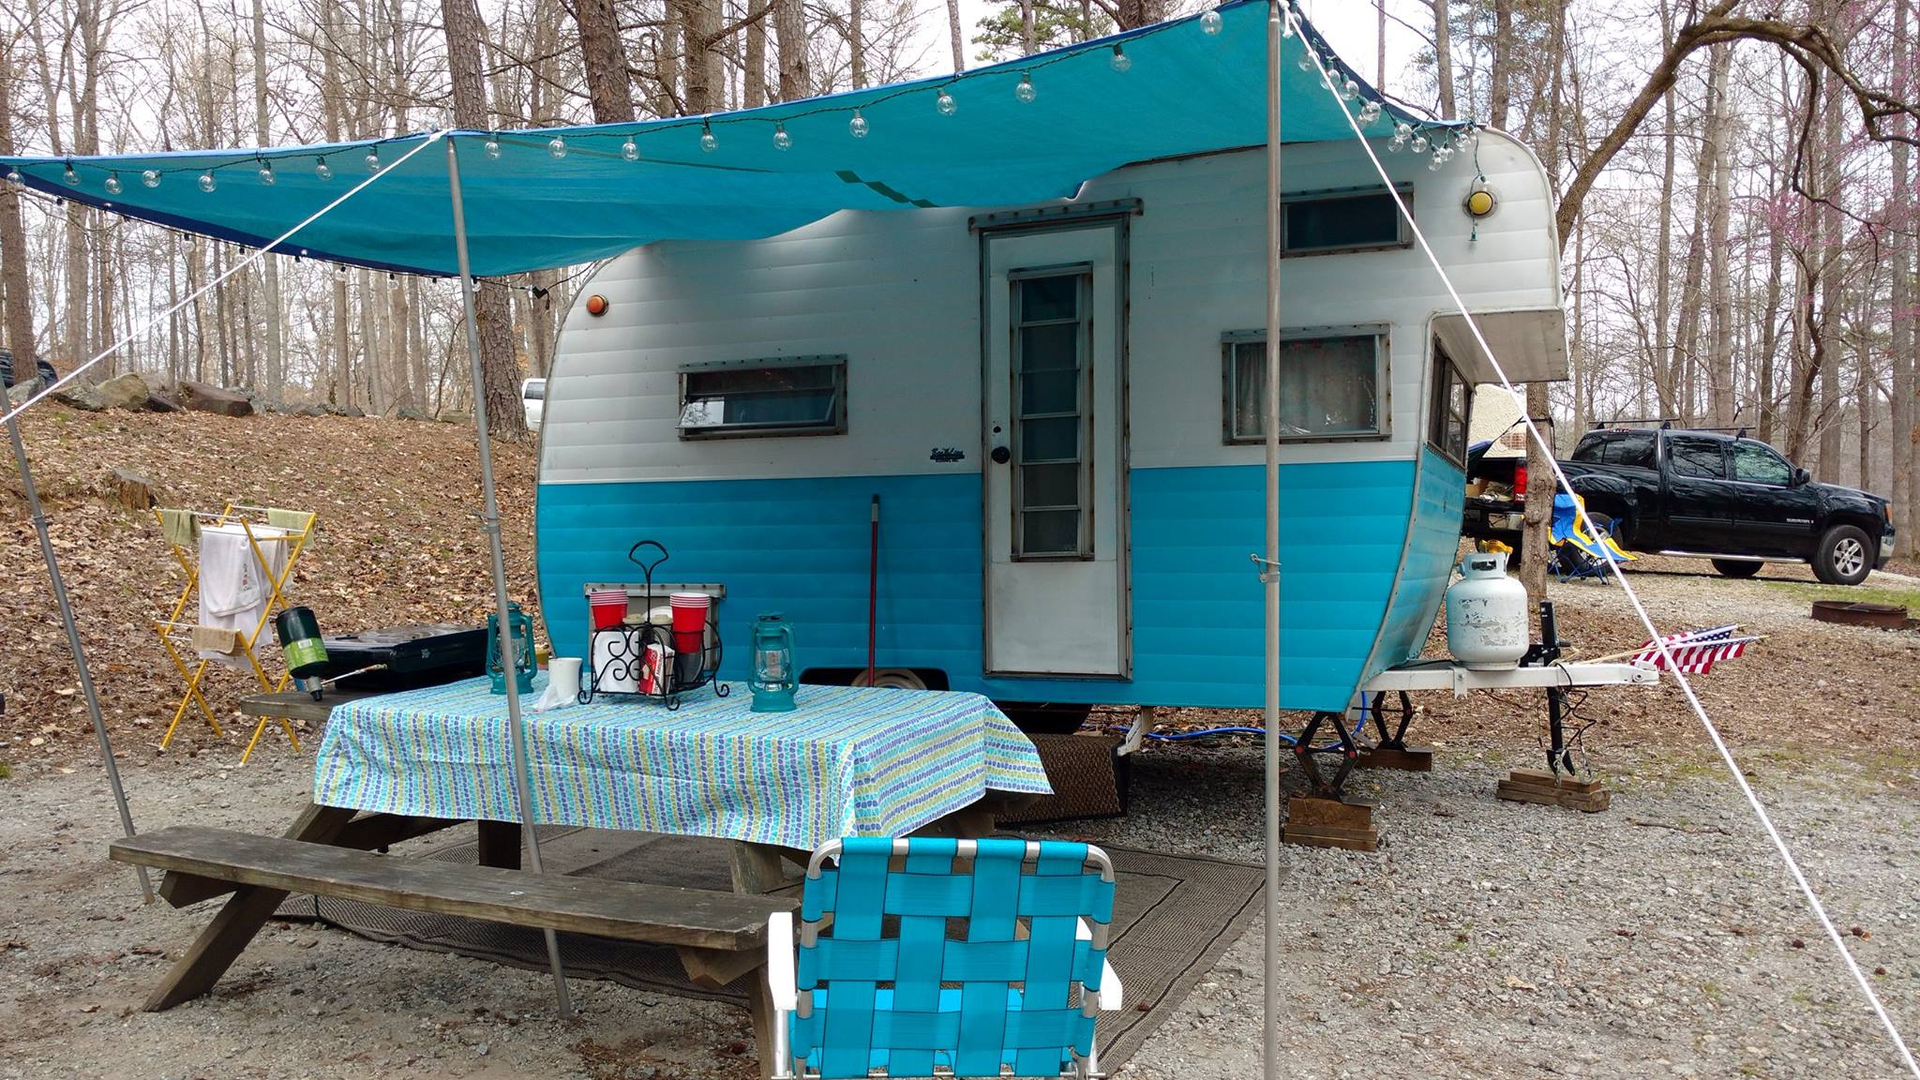 Vintage Trailers Camping at Croft State Park